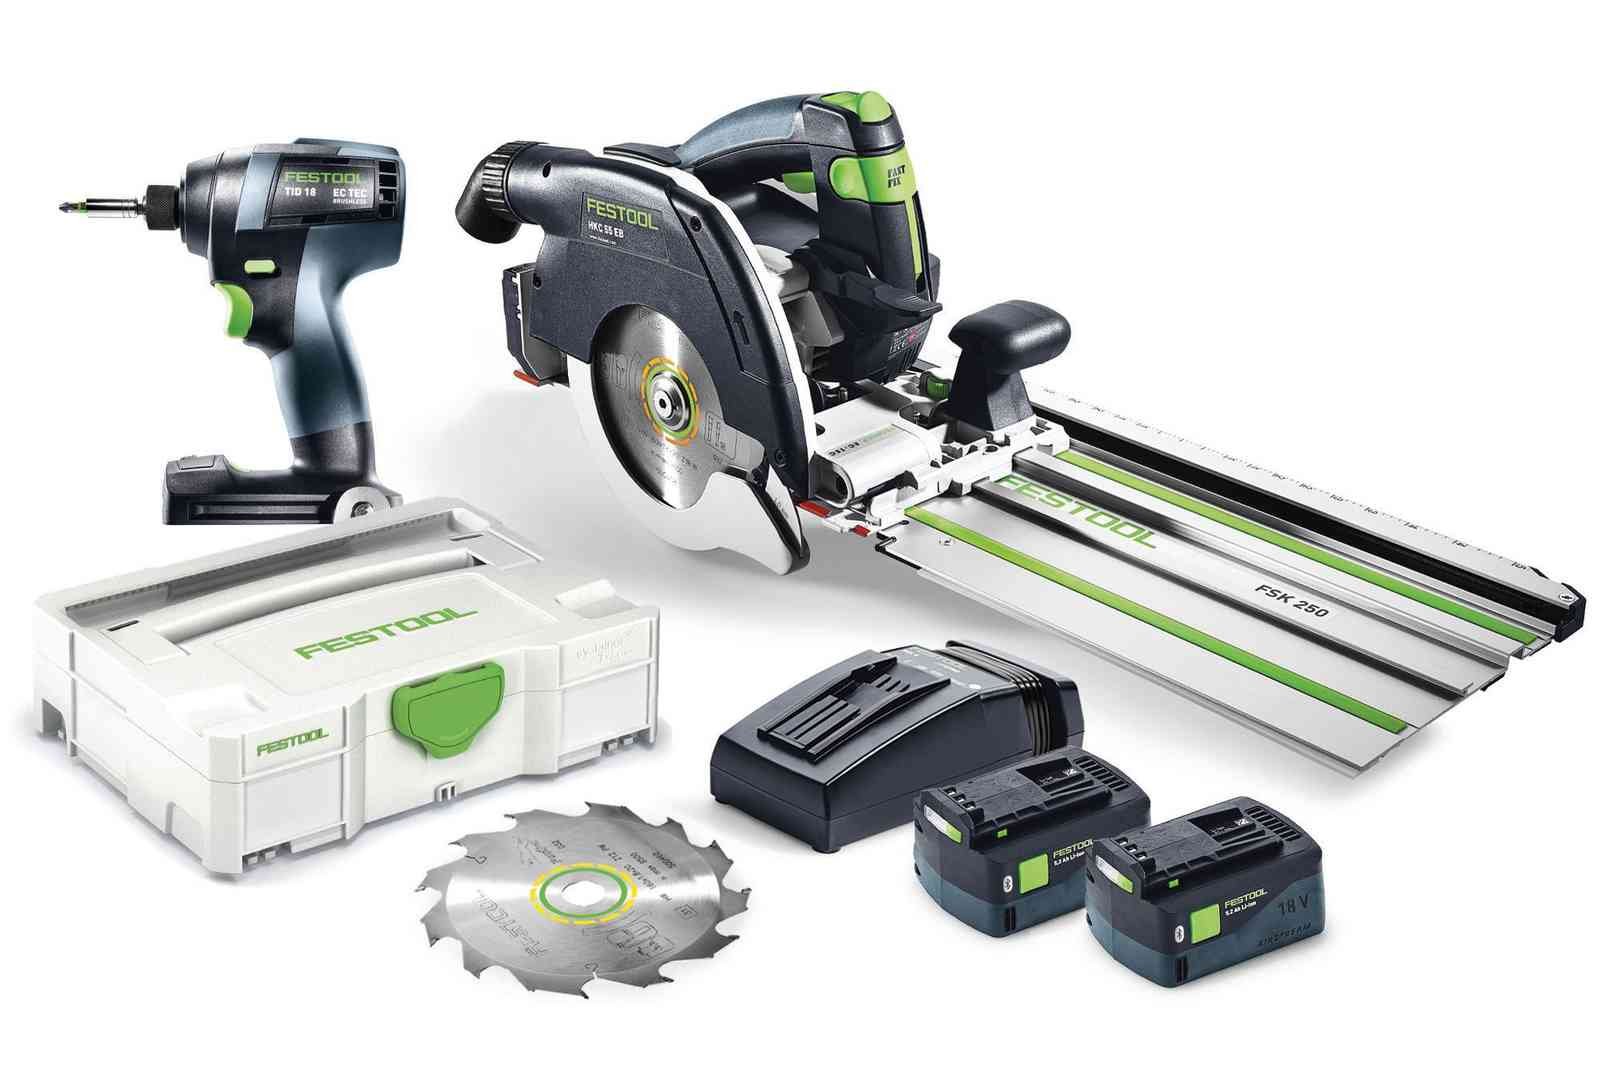 Festool, Festool At Von Tobel